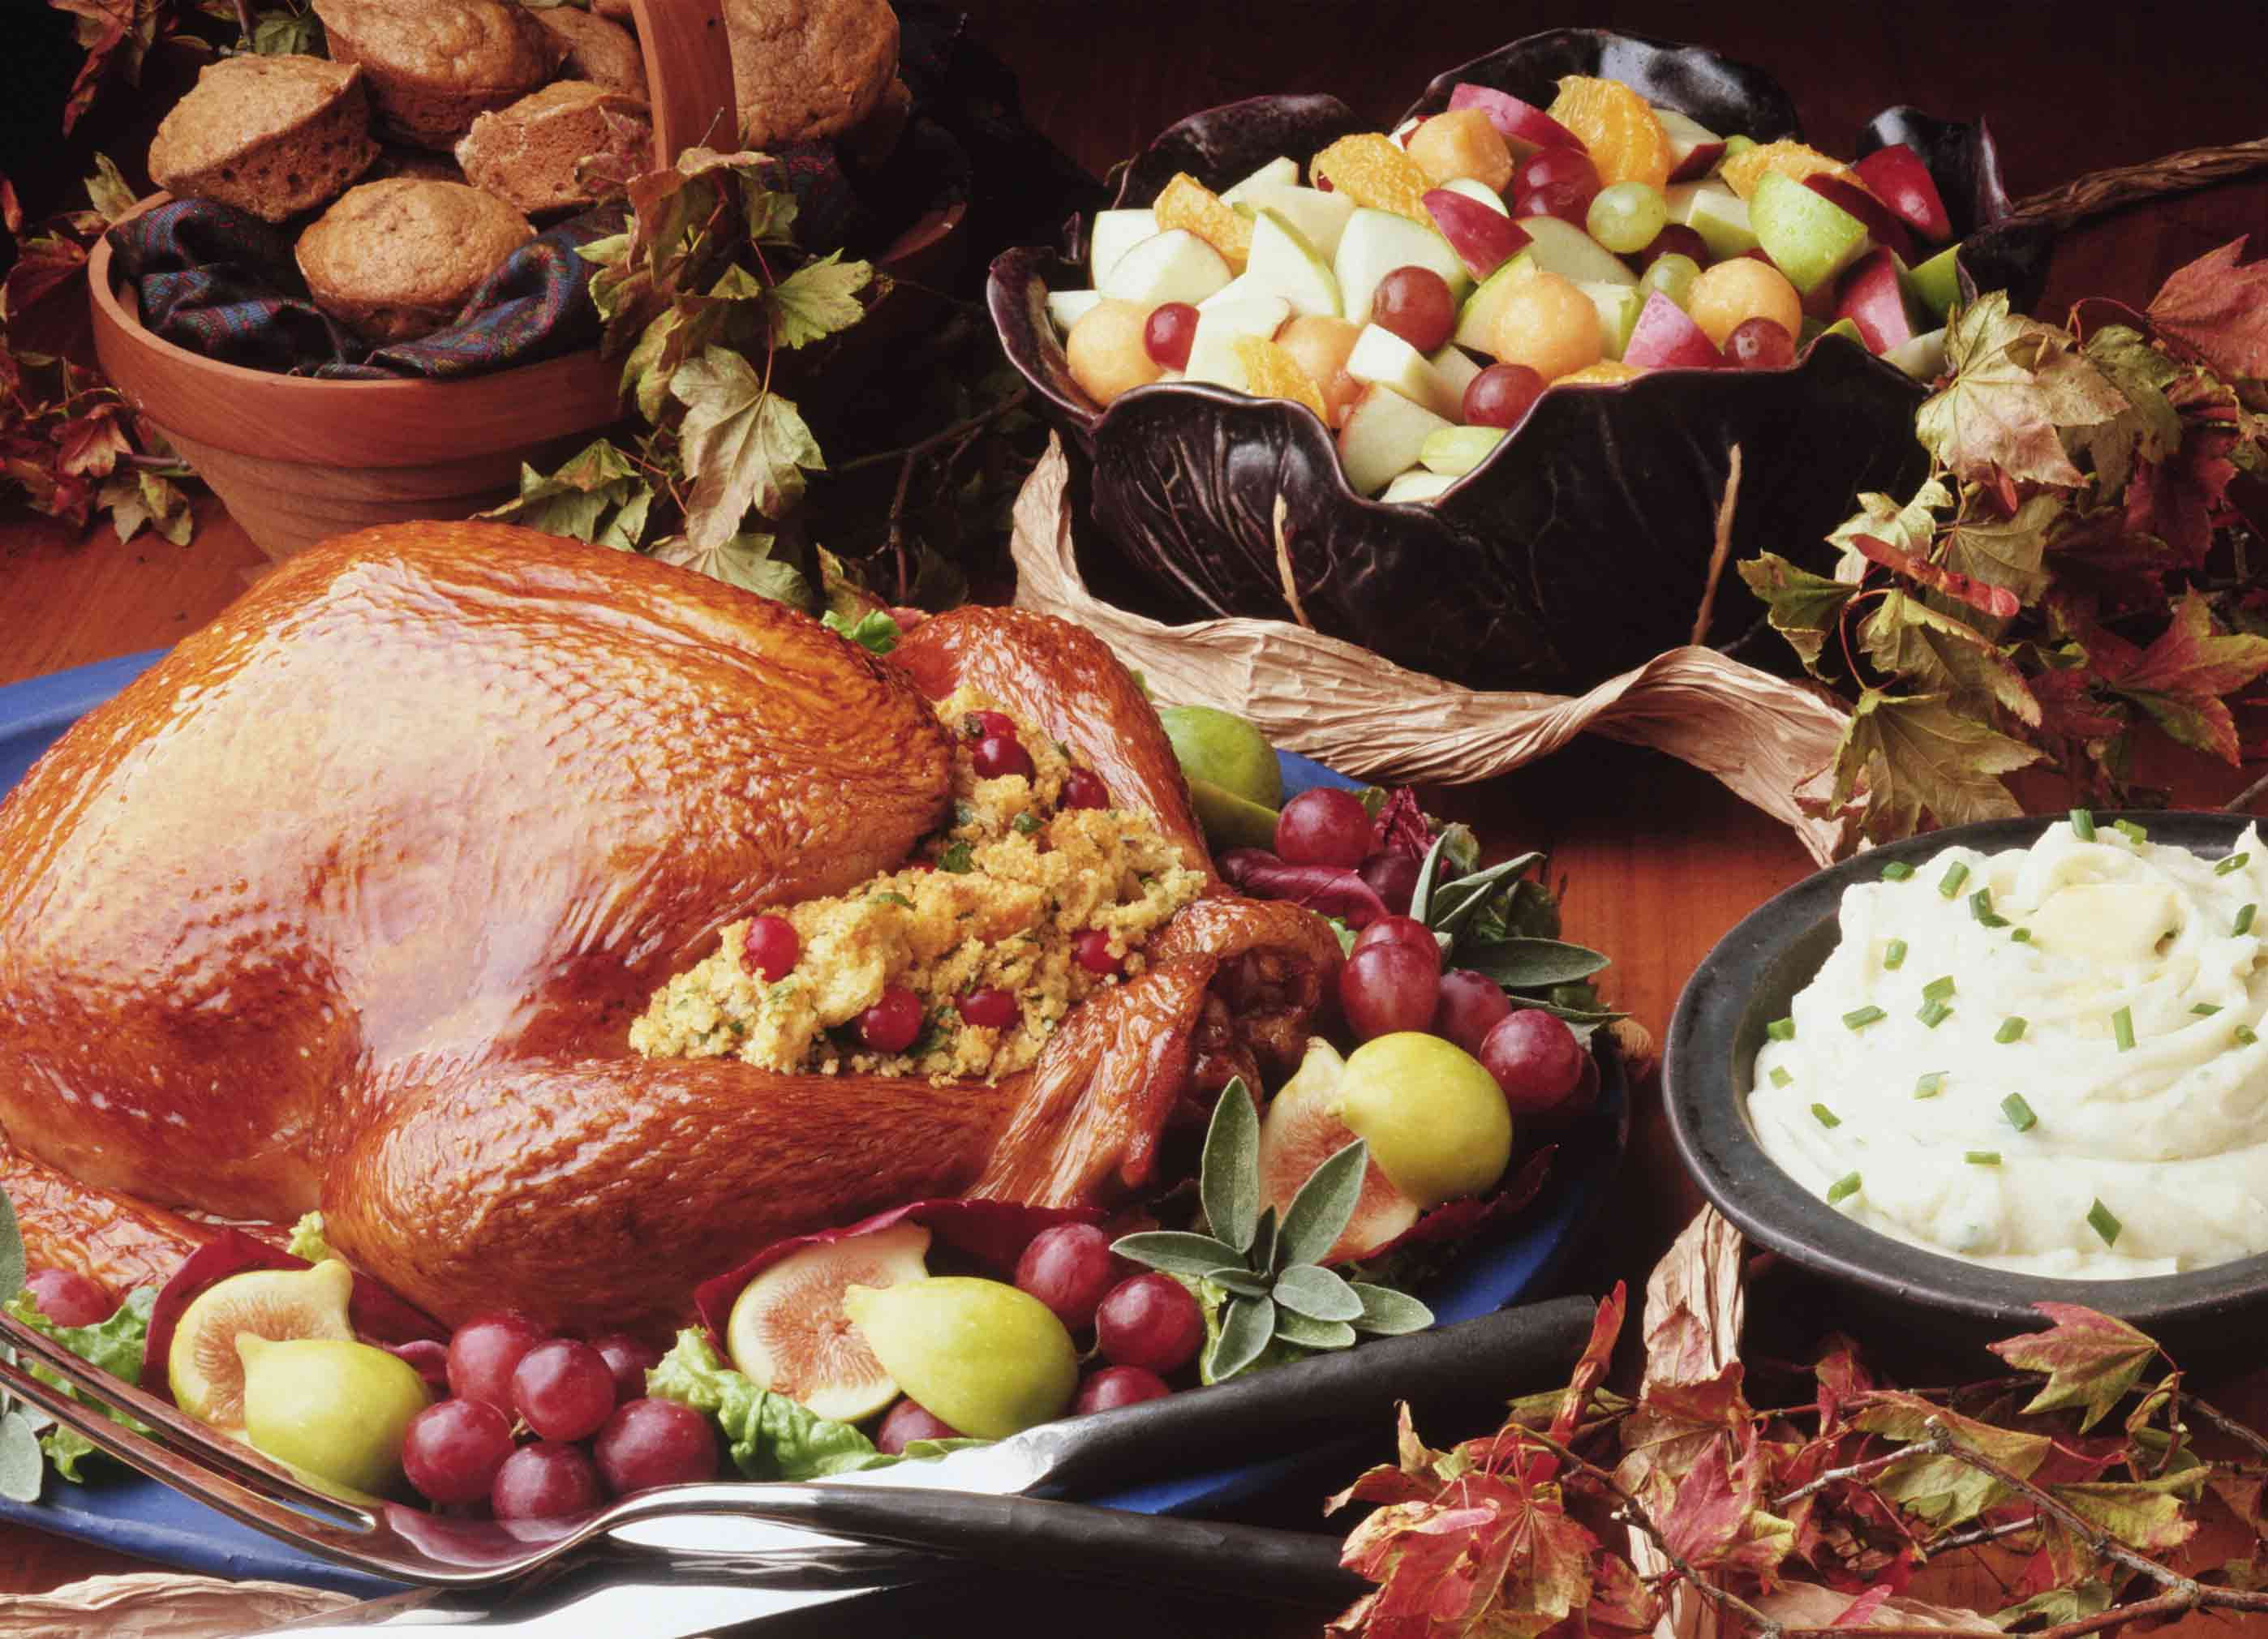 Restaurant Thanksgiving Dinner  Northern Michigan Restaurants Serving Thanksgiving Dinner